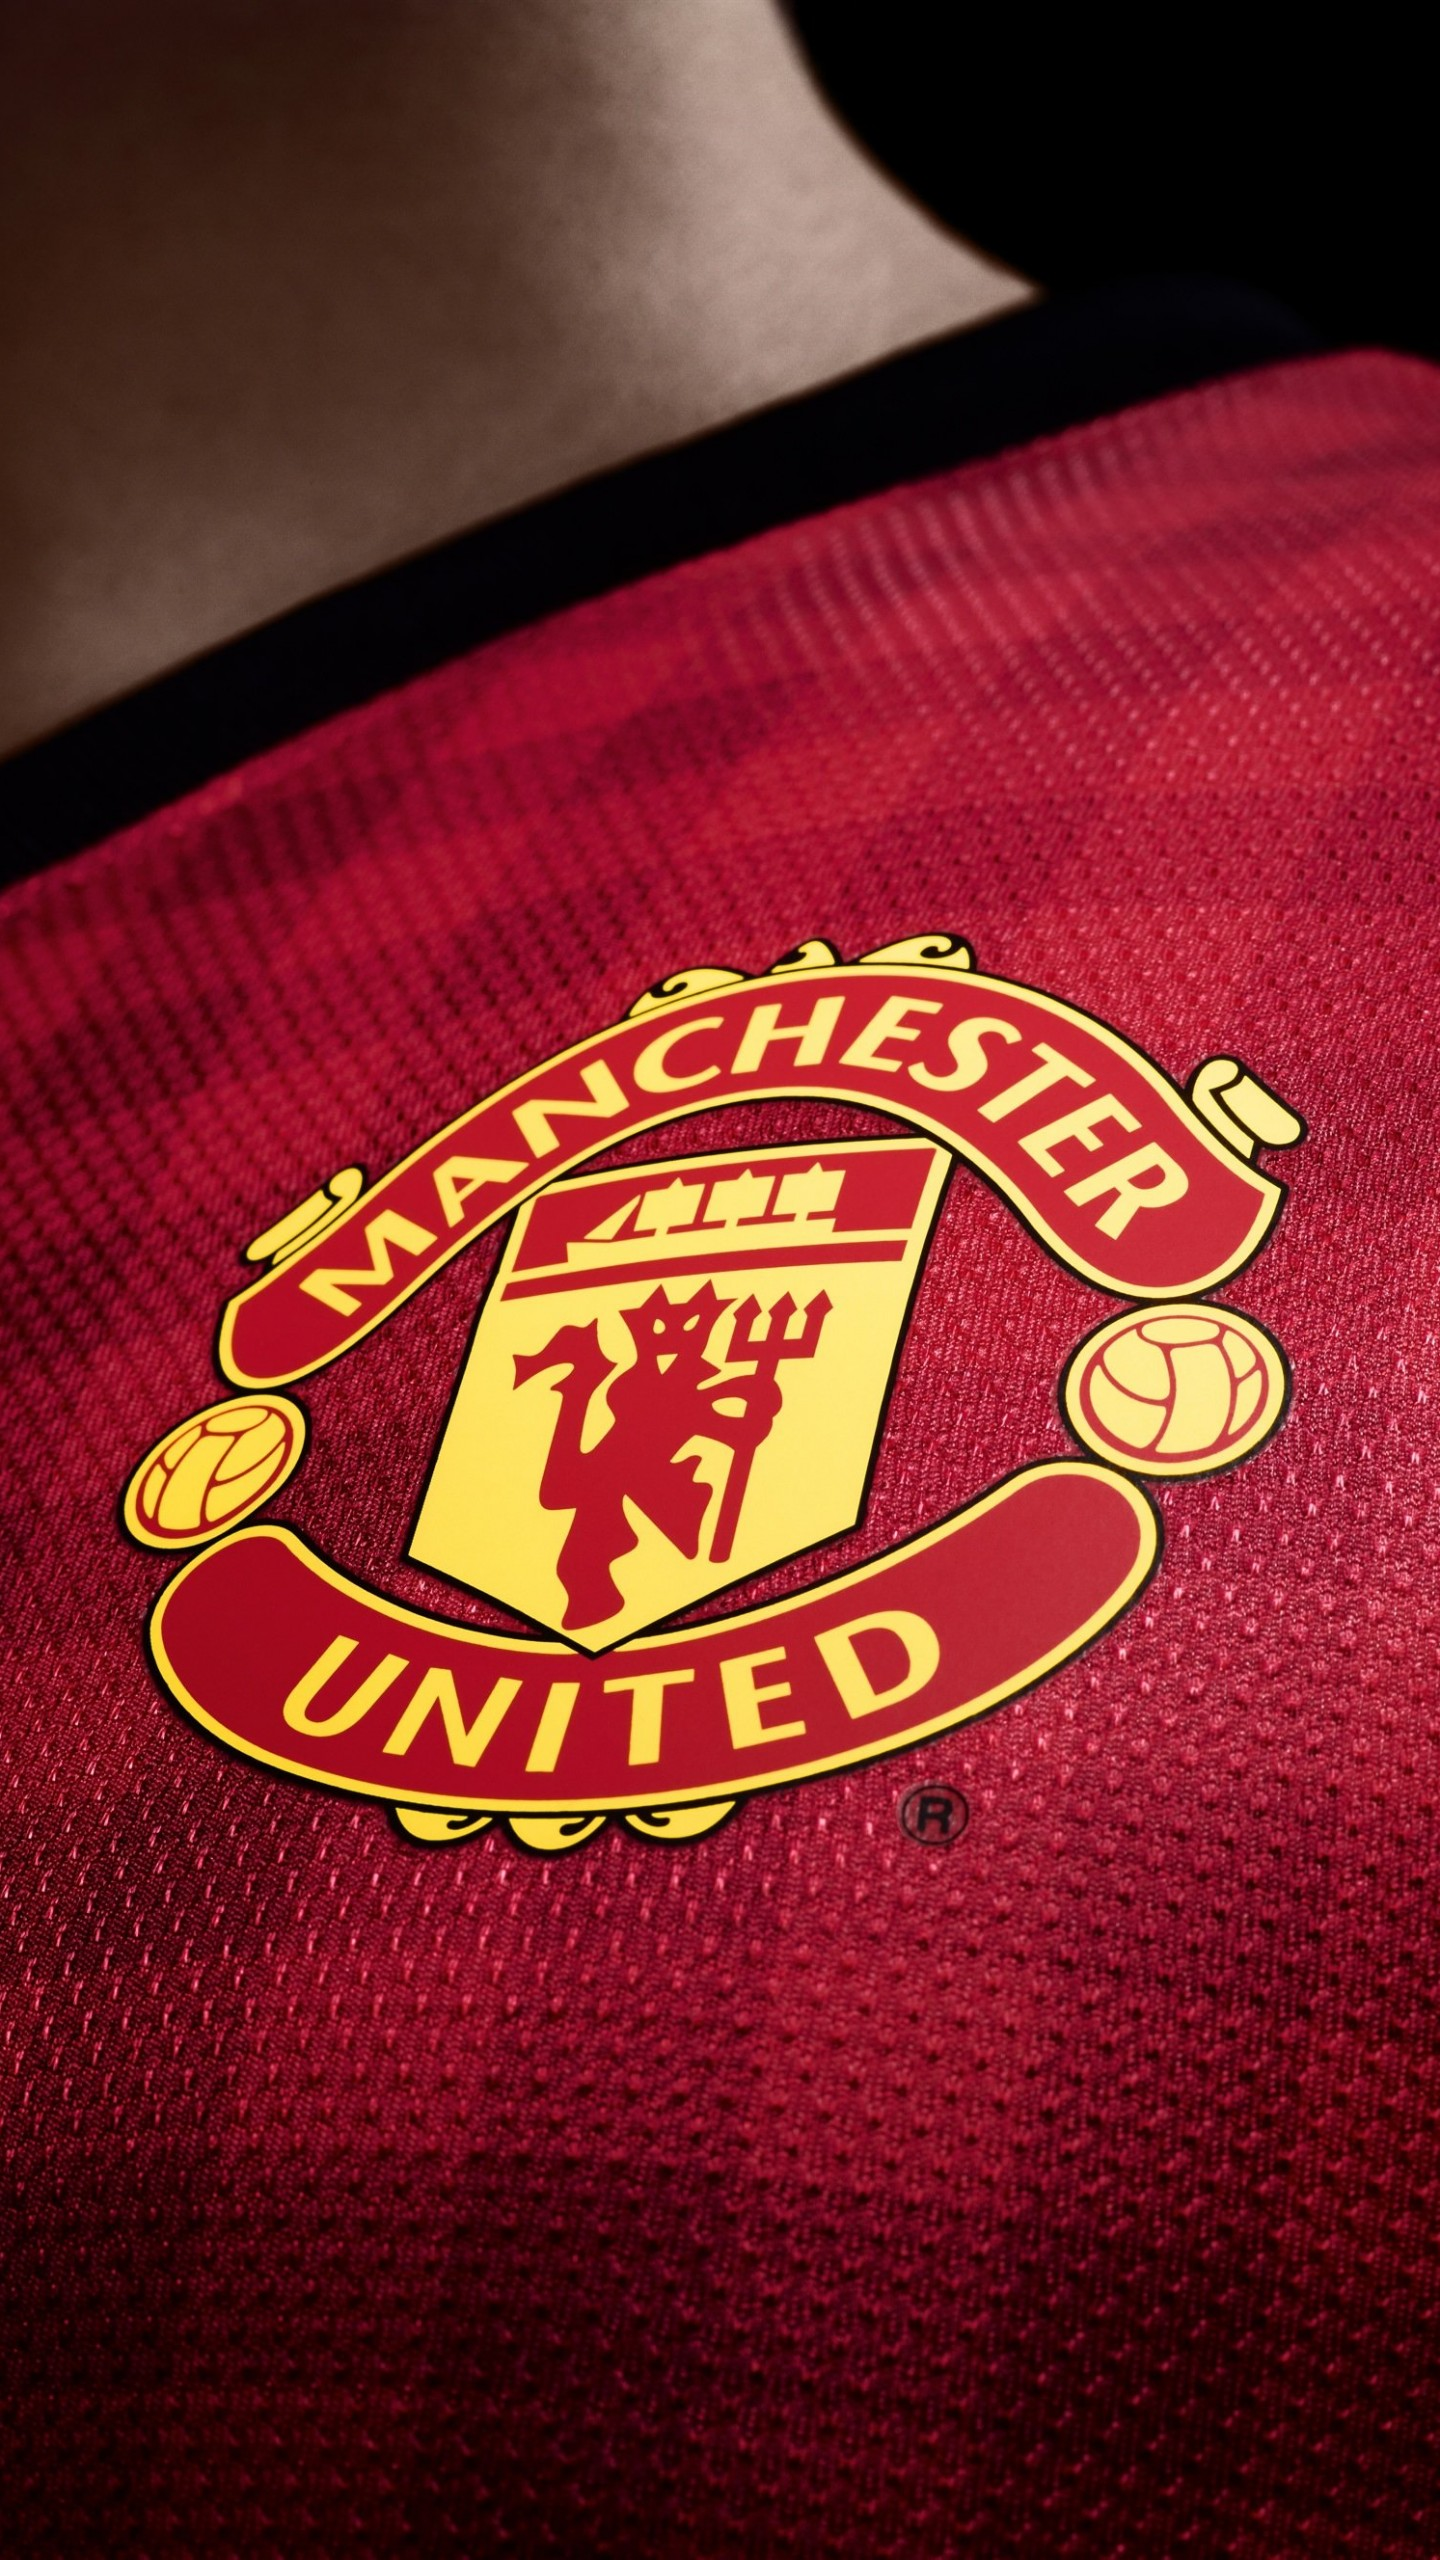 Manchester United Logo Shirt Wallpaper for SAMSUNG Galaxy Note 4